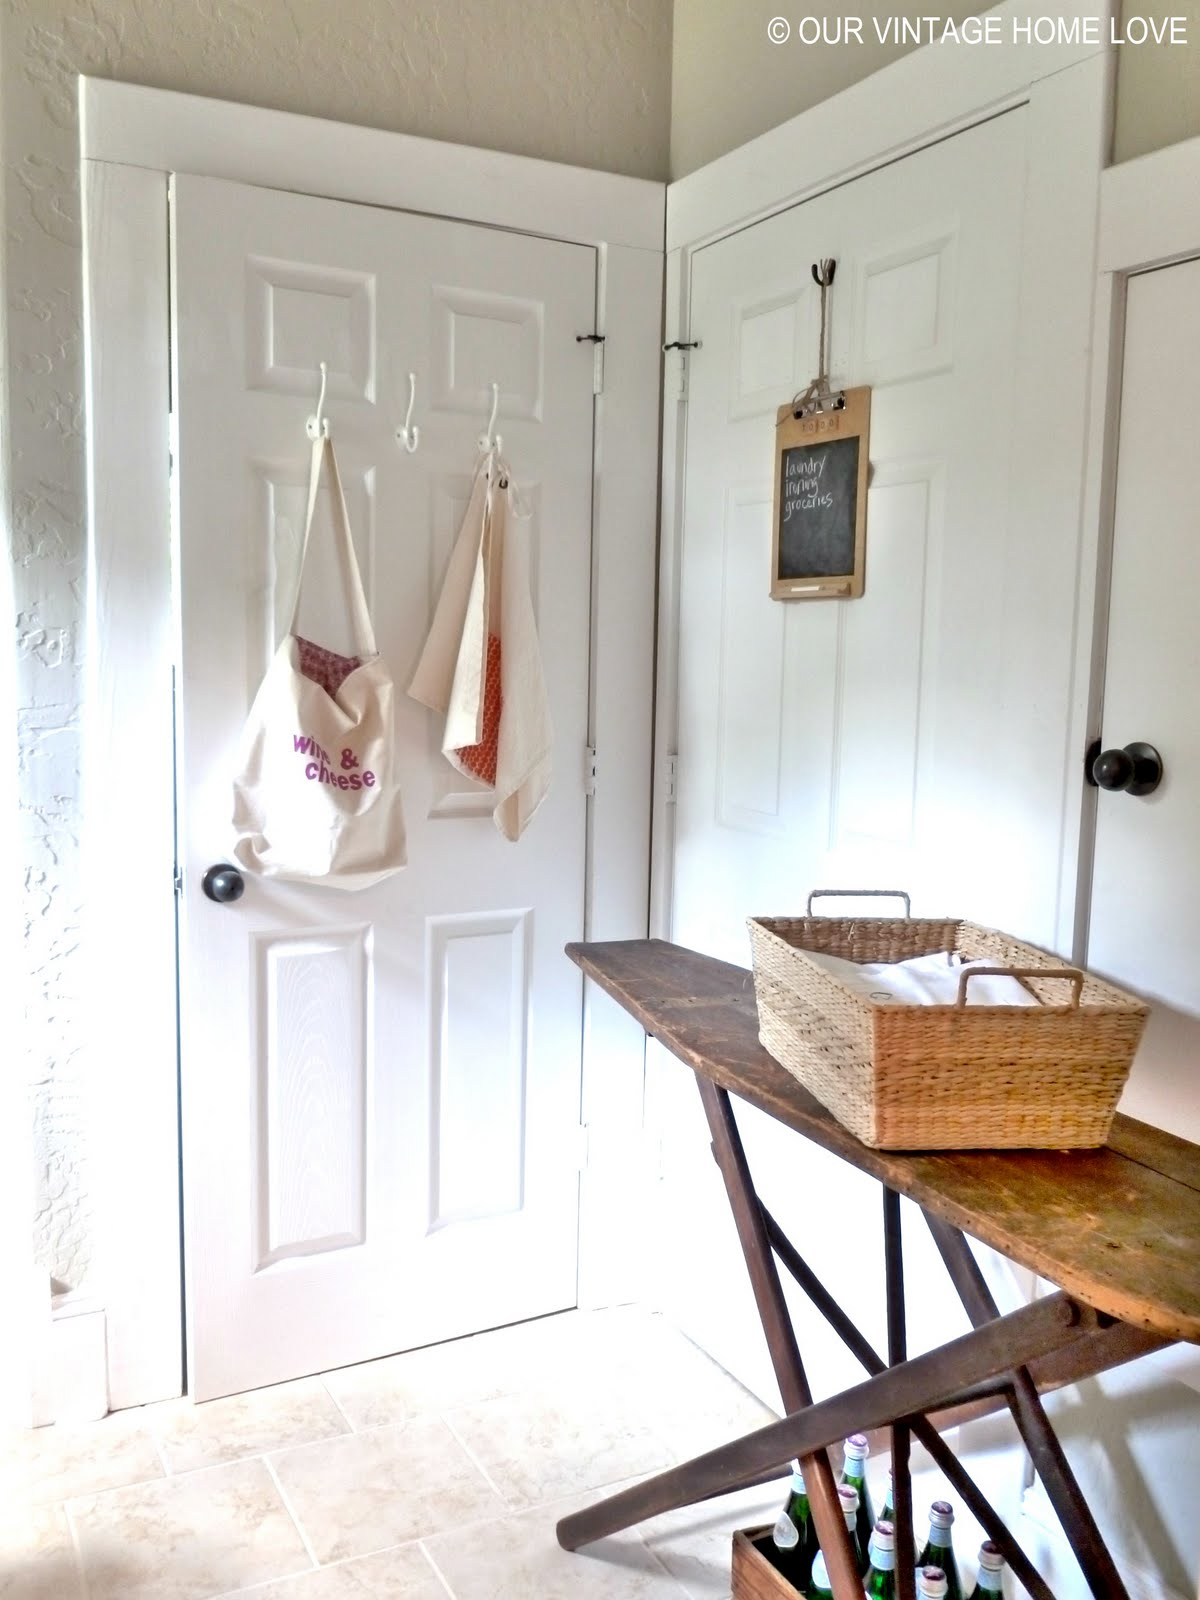 vintage home love: Laundry Room Ideas and a Vintage Ironing Board